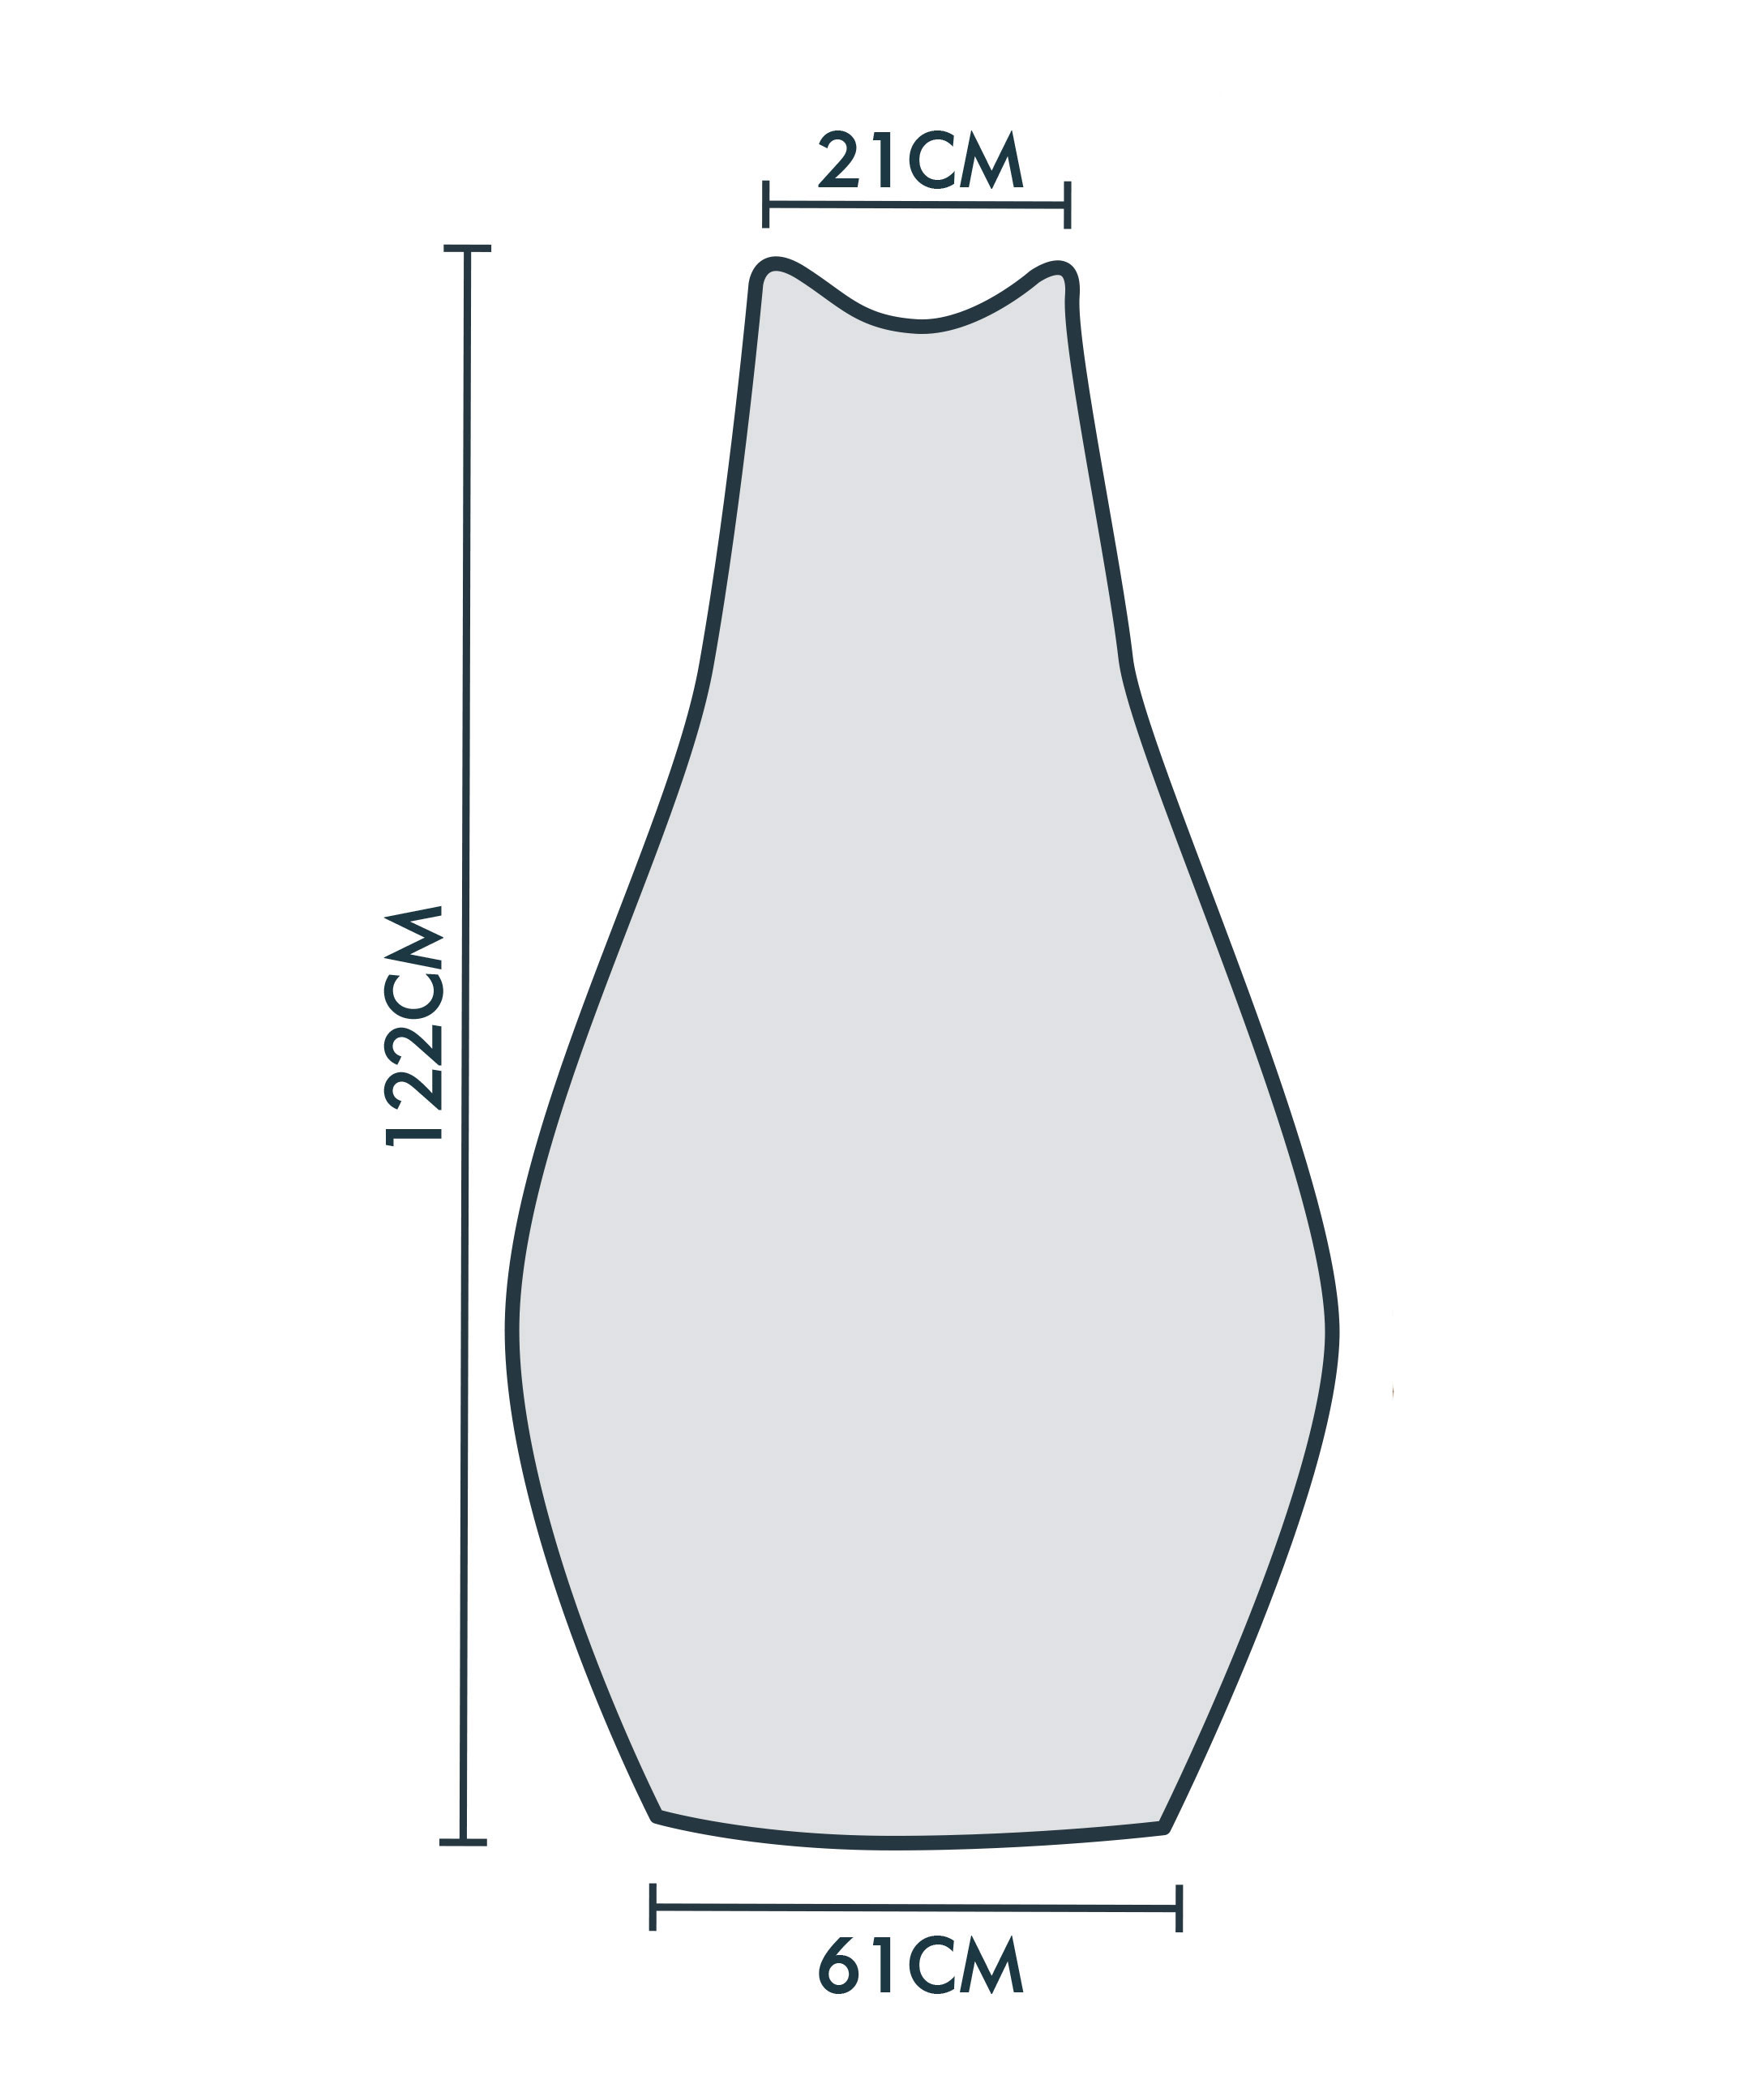 jarder chimenea cover dimensions